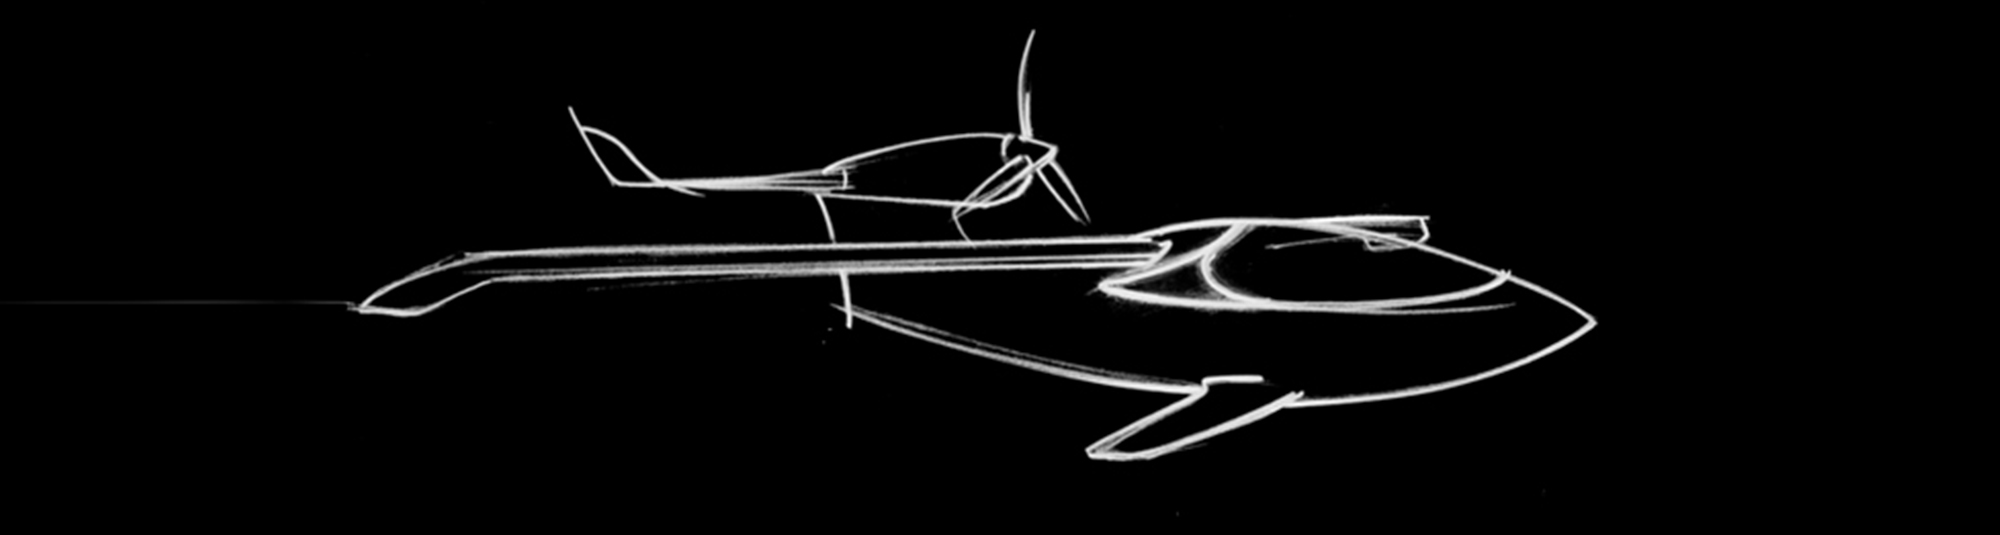 Black and white sketch of the innovative aircraft LISA AKOYA